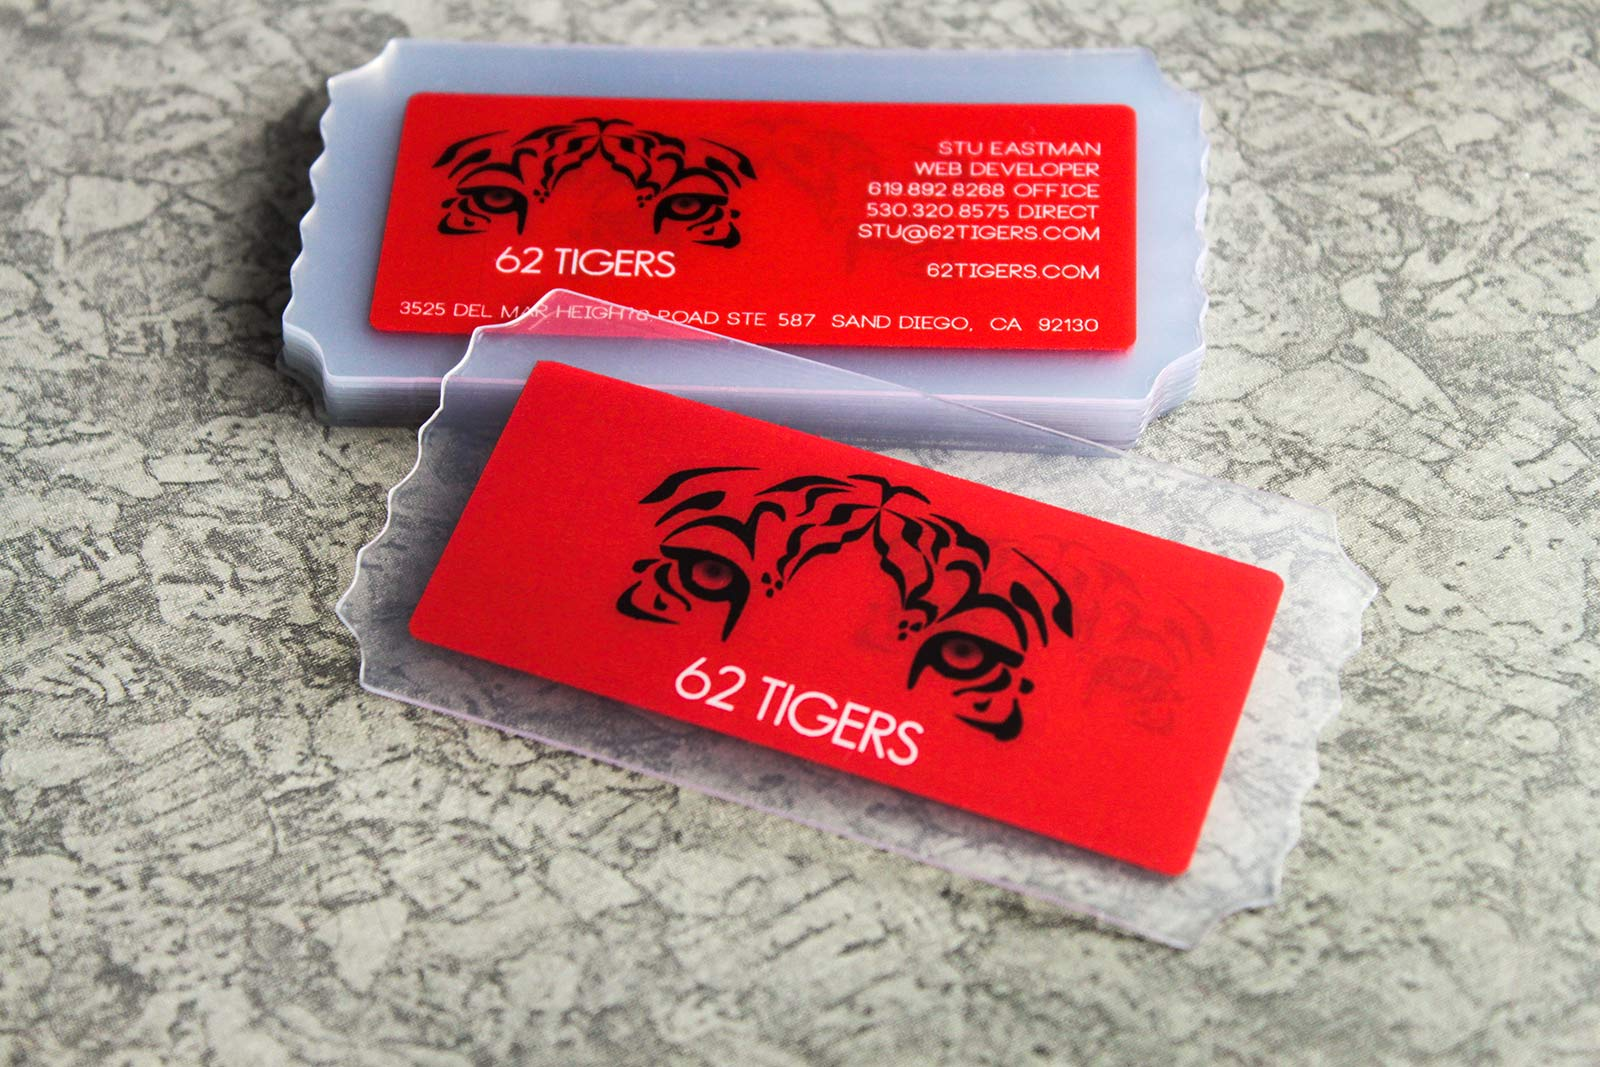 4 Ways to Make Your Business Card Stand Out